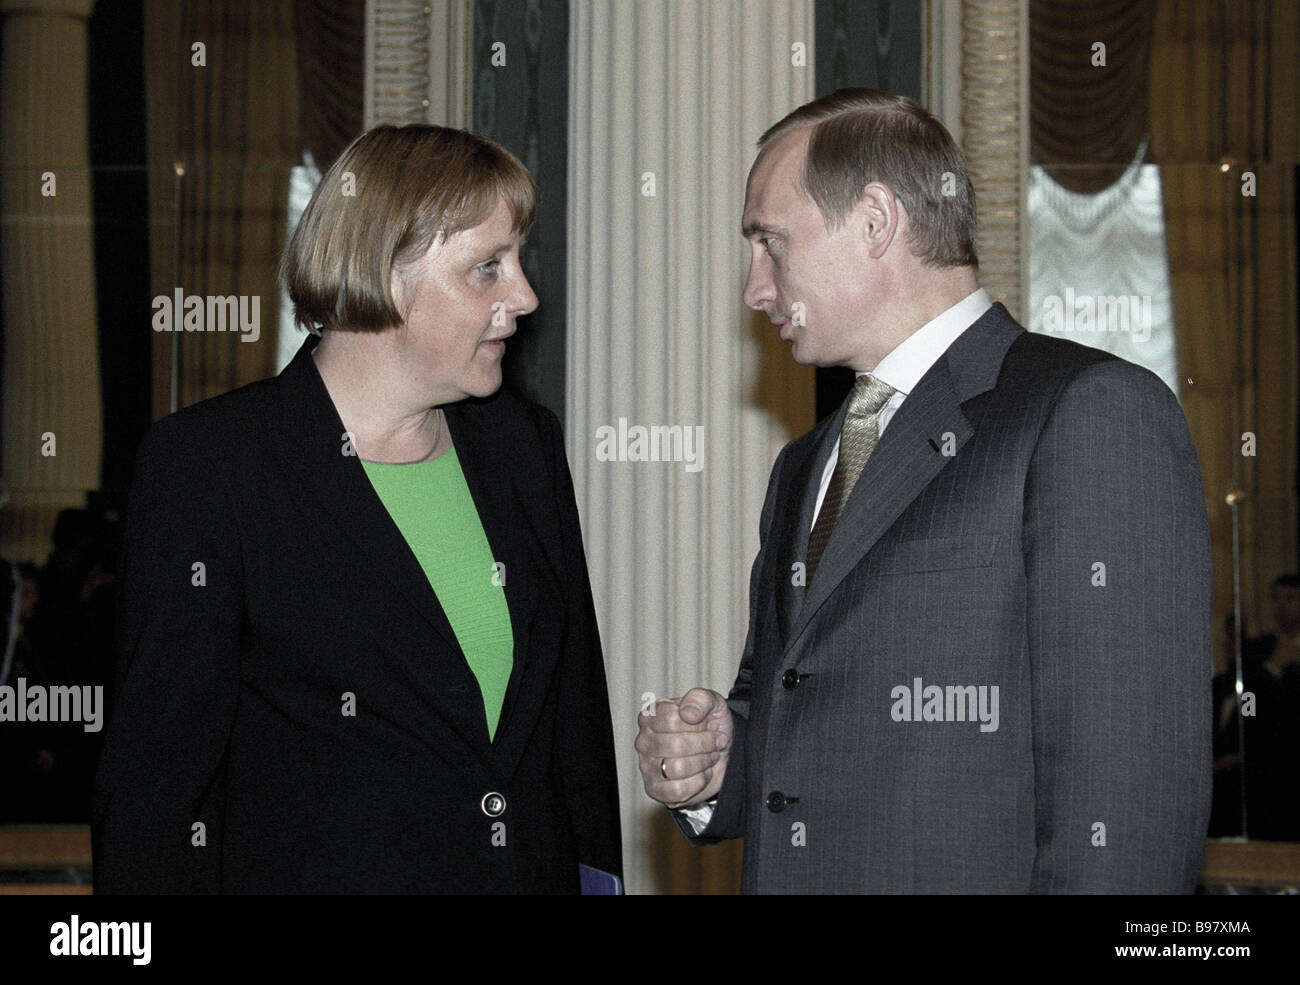 Angela Merkel head of the Christian Democratic Union CDU the main opposition party of Germany and Vladimir Putin - Stock Image